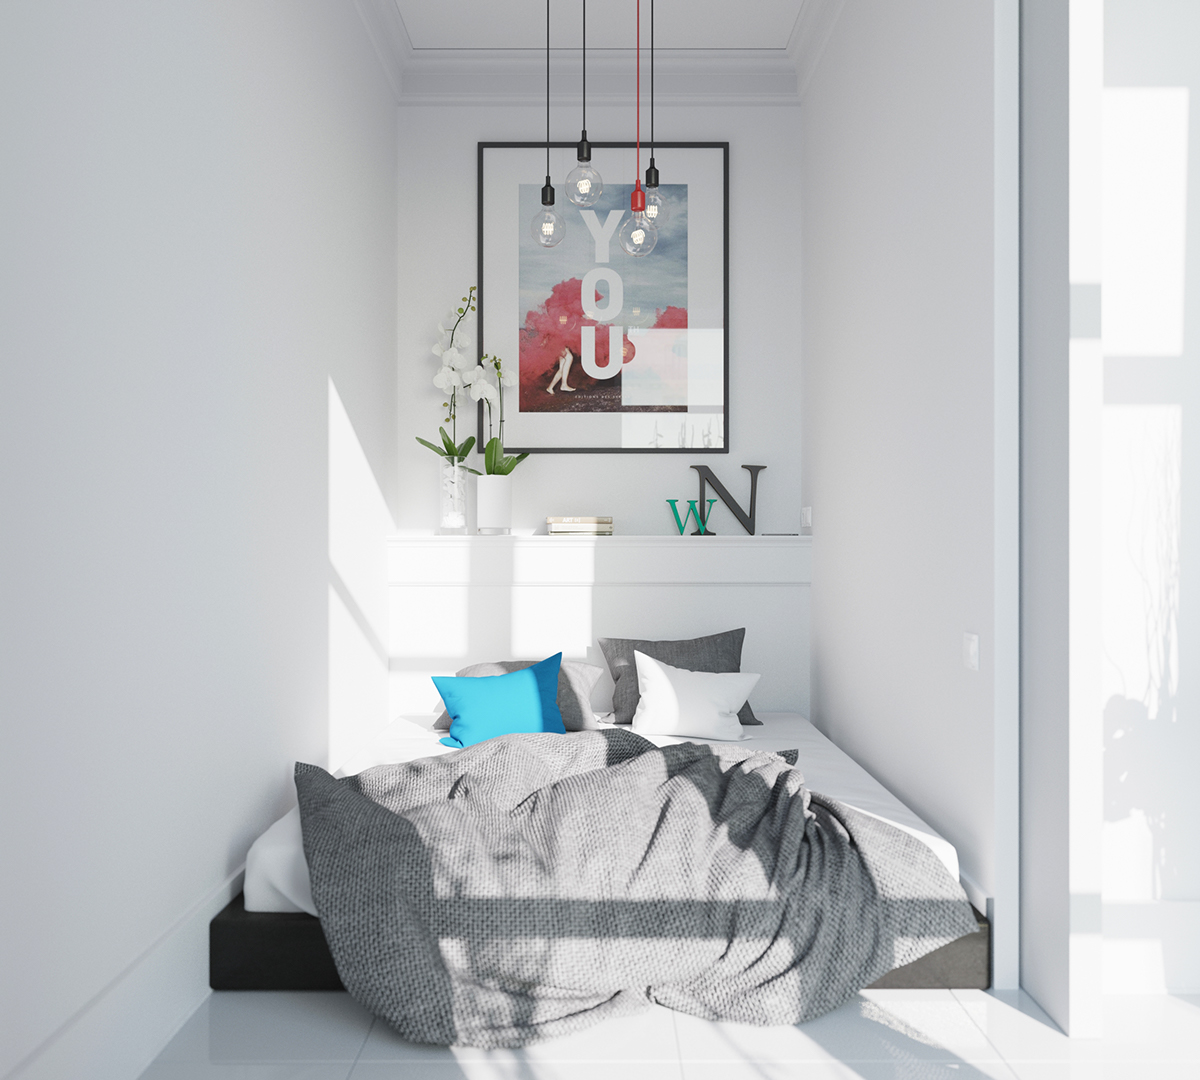 scandinavian bedrooms: ideas and inspiration